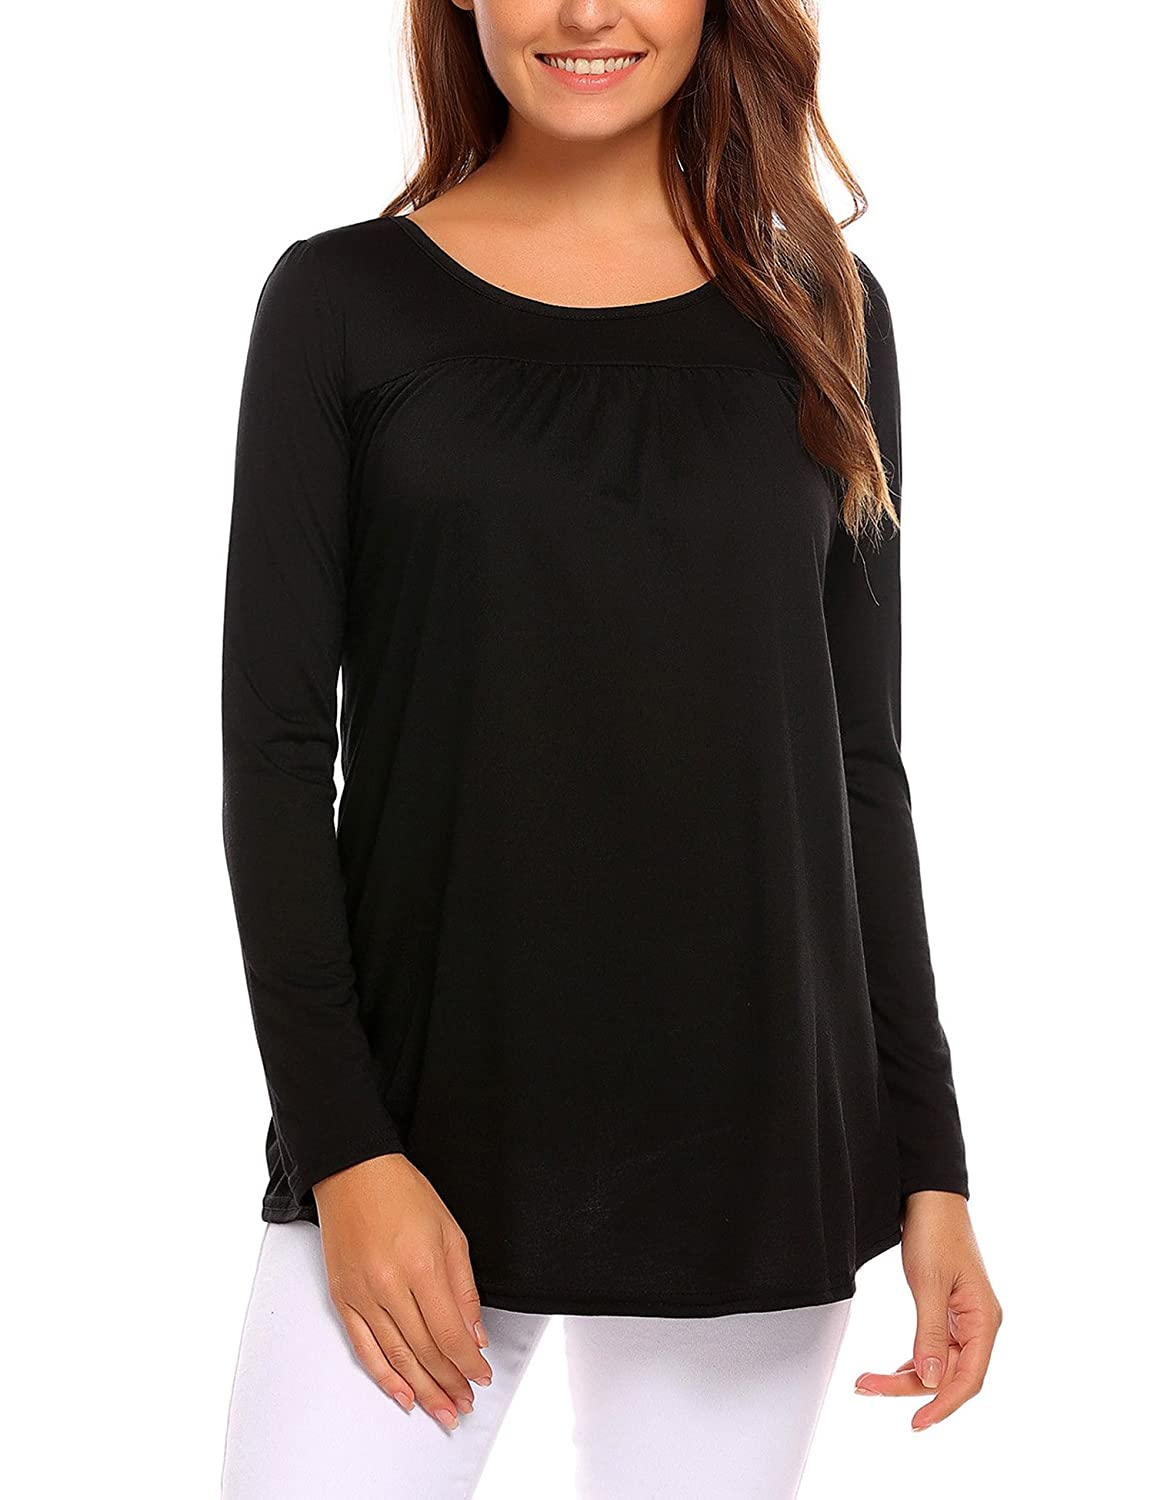 aac0f0529 ☆Easther Scoop Neck Pleated Short/Long Sleeve Blouse Top Tunic Shirt with  Flowy Hem. Soft and comfortable fabric with stretch